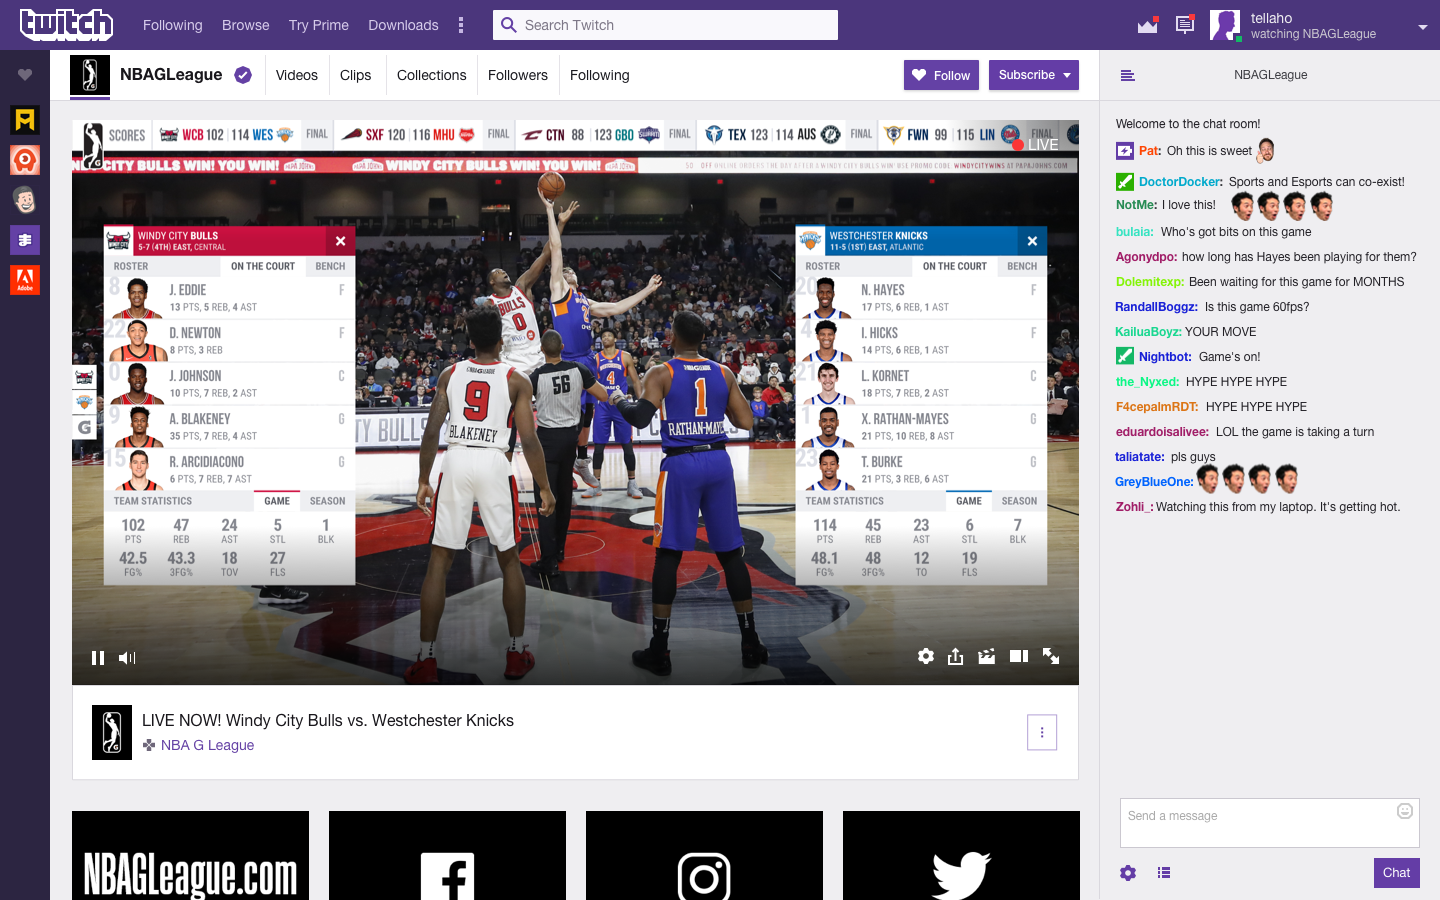 Twitch will start streaming U.S. minor league basketball games